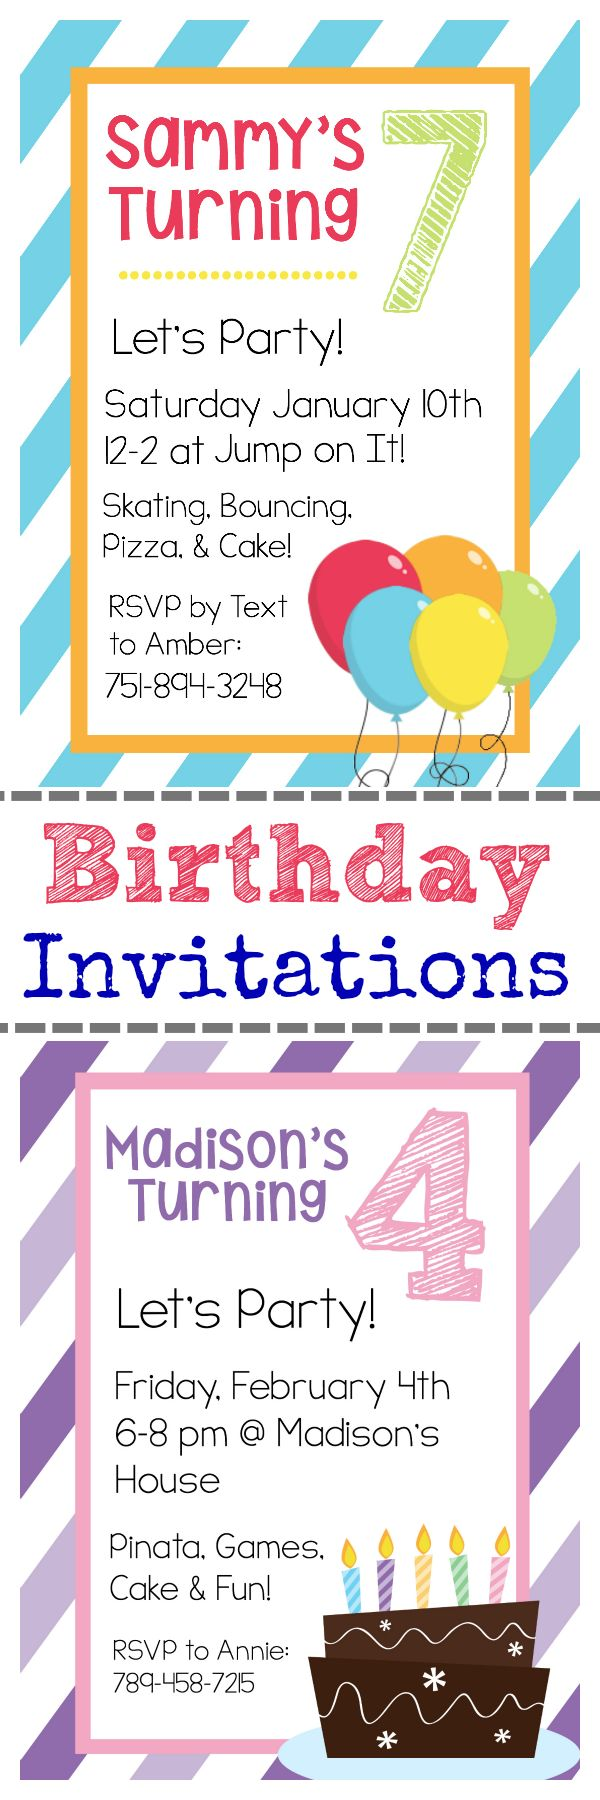 Free Printable Birthday Invitation Templates  Birthday Invitation Designs Free